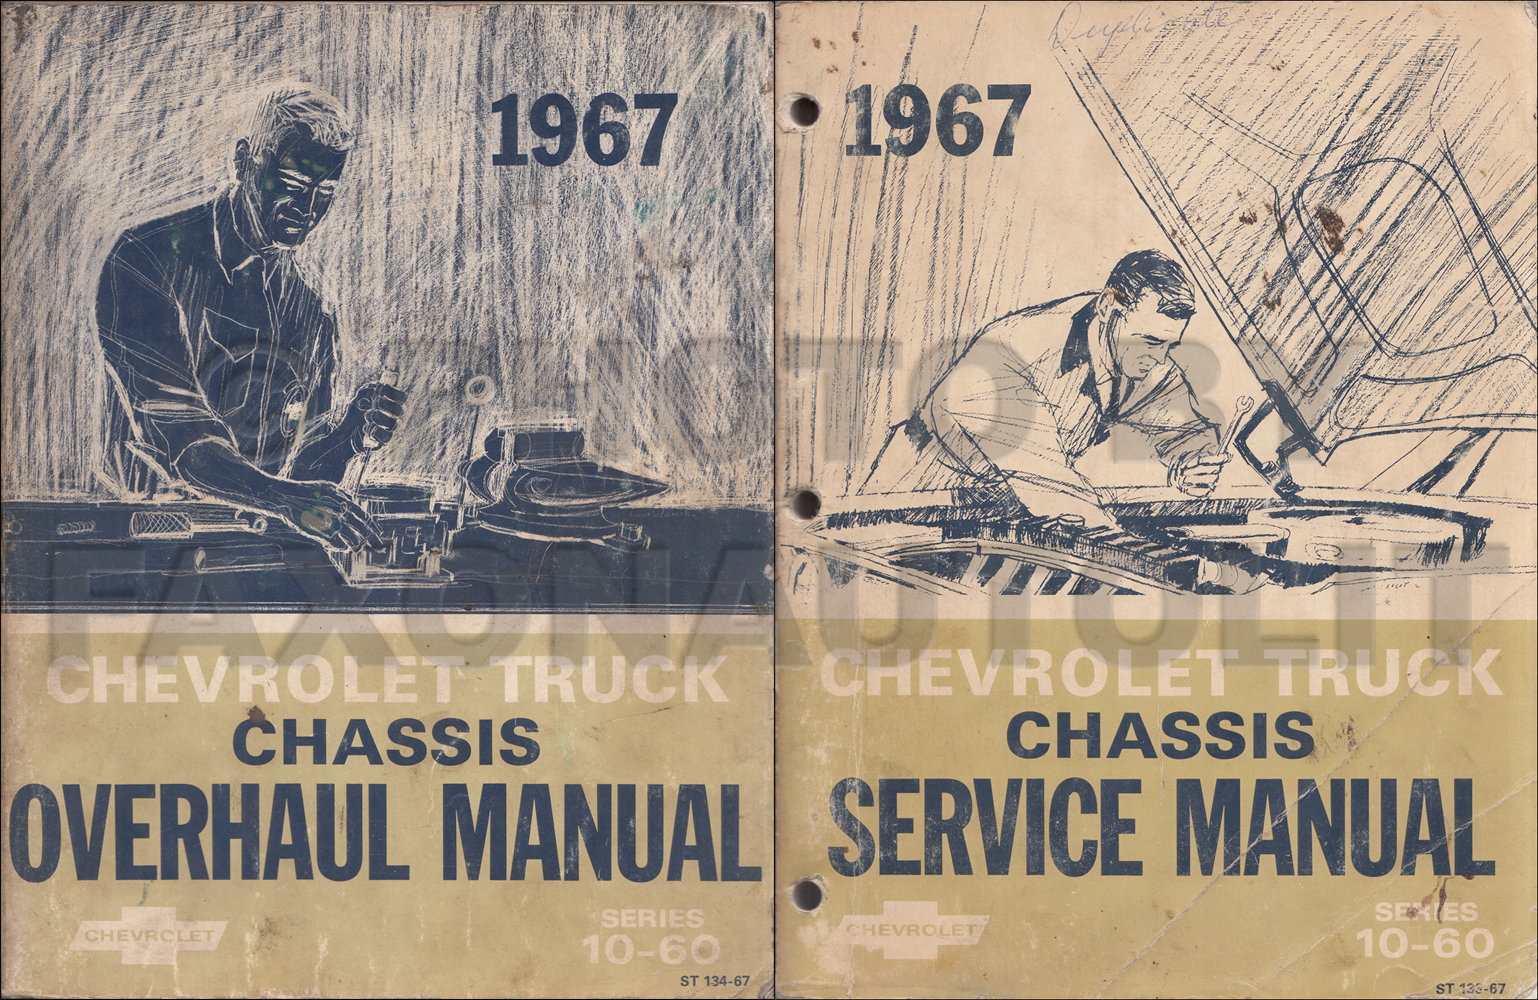 1967 Chevy 10-60 Truck Repair Shop Manual & Overhaul manual Original Set